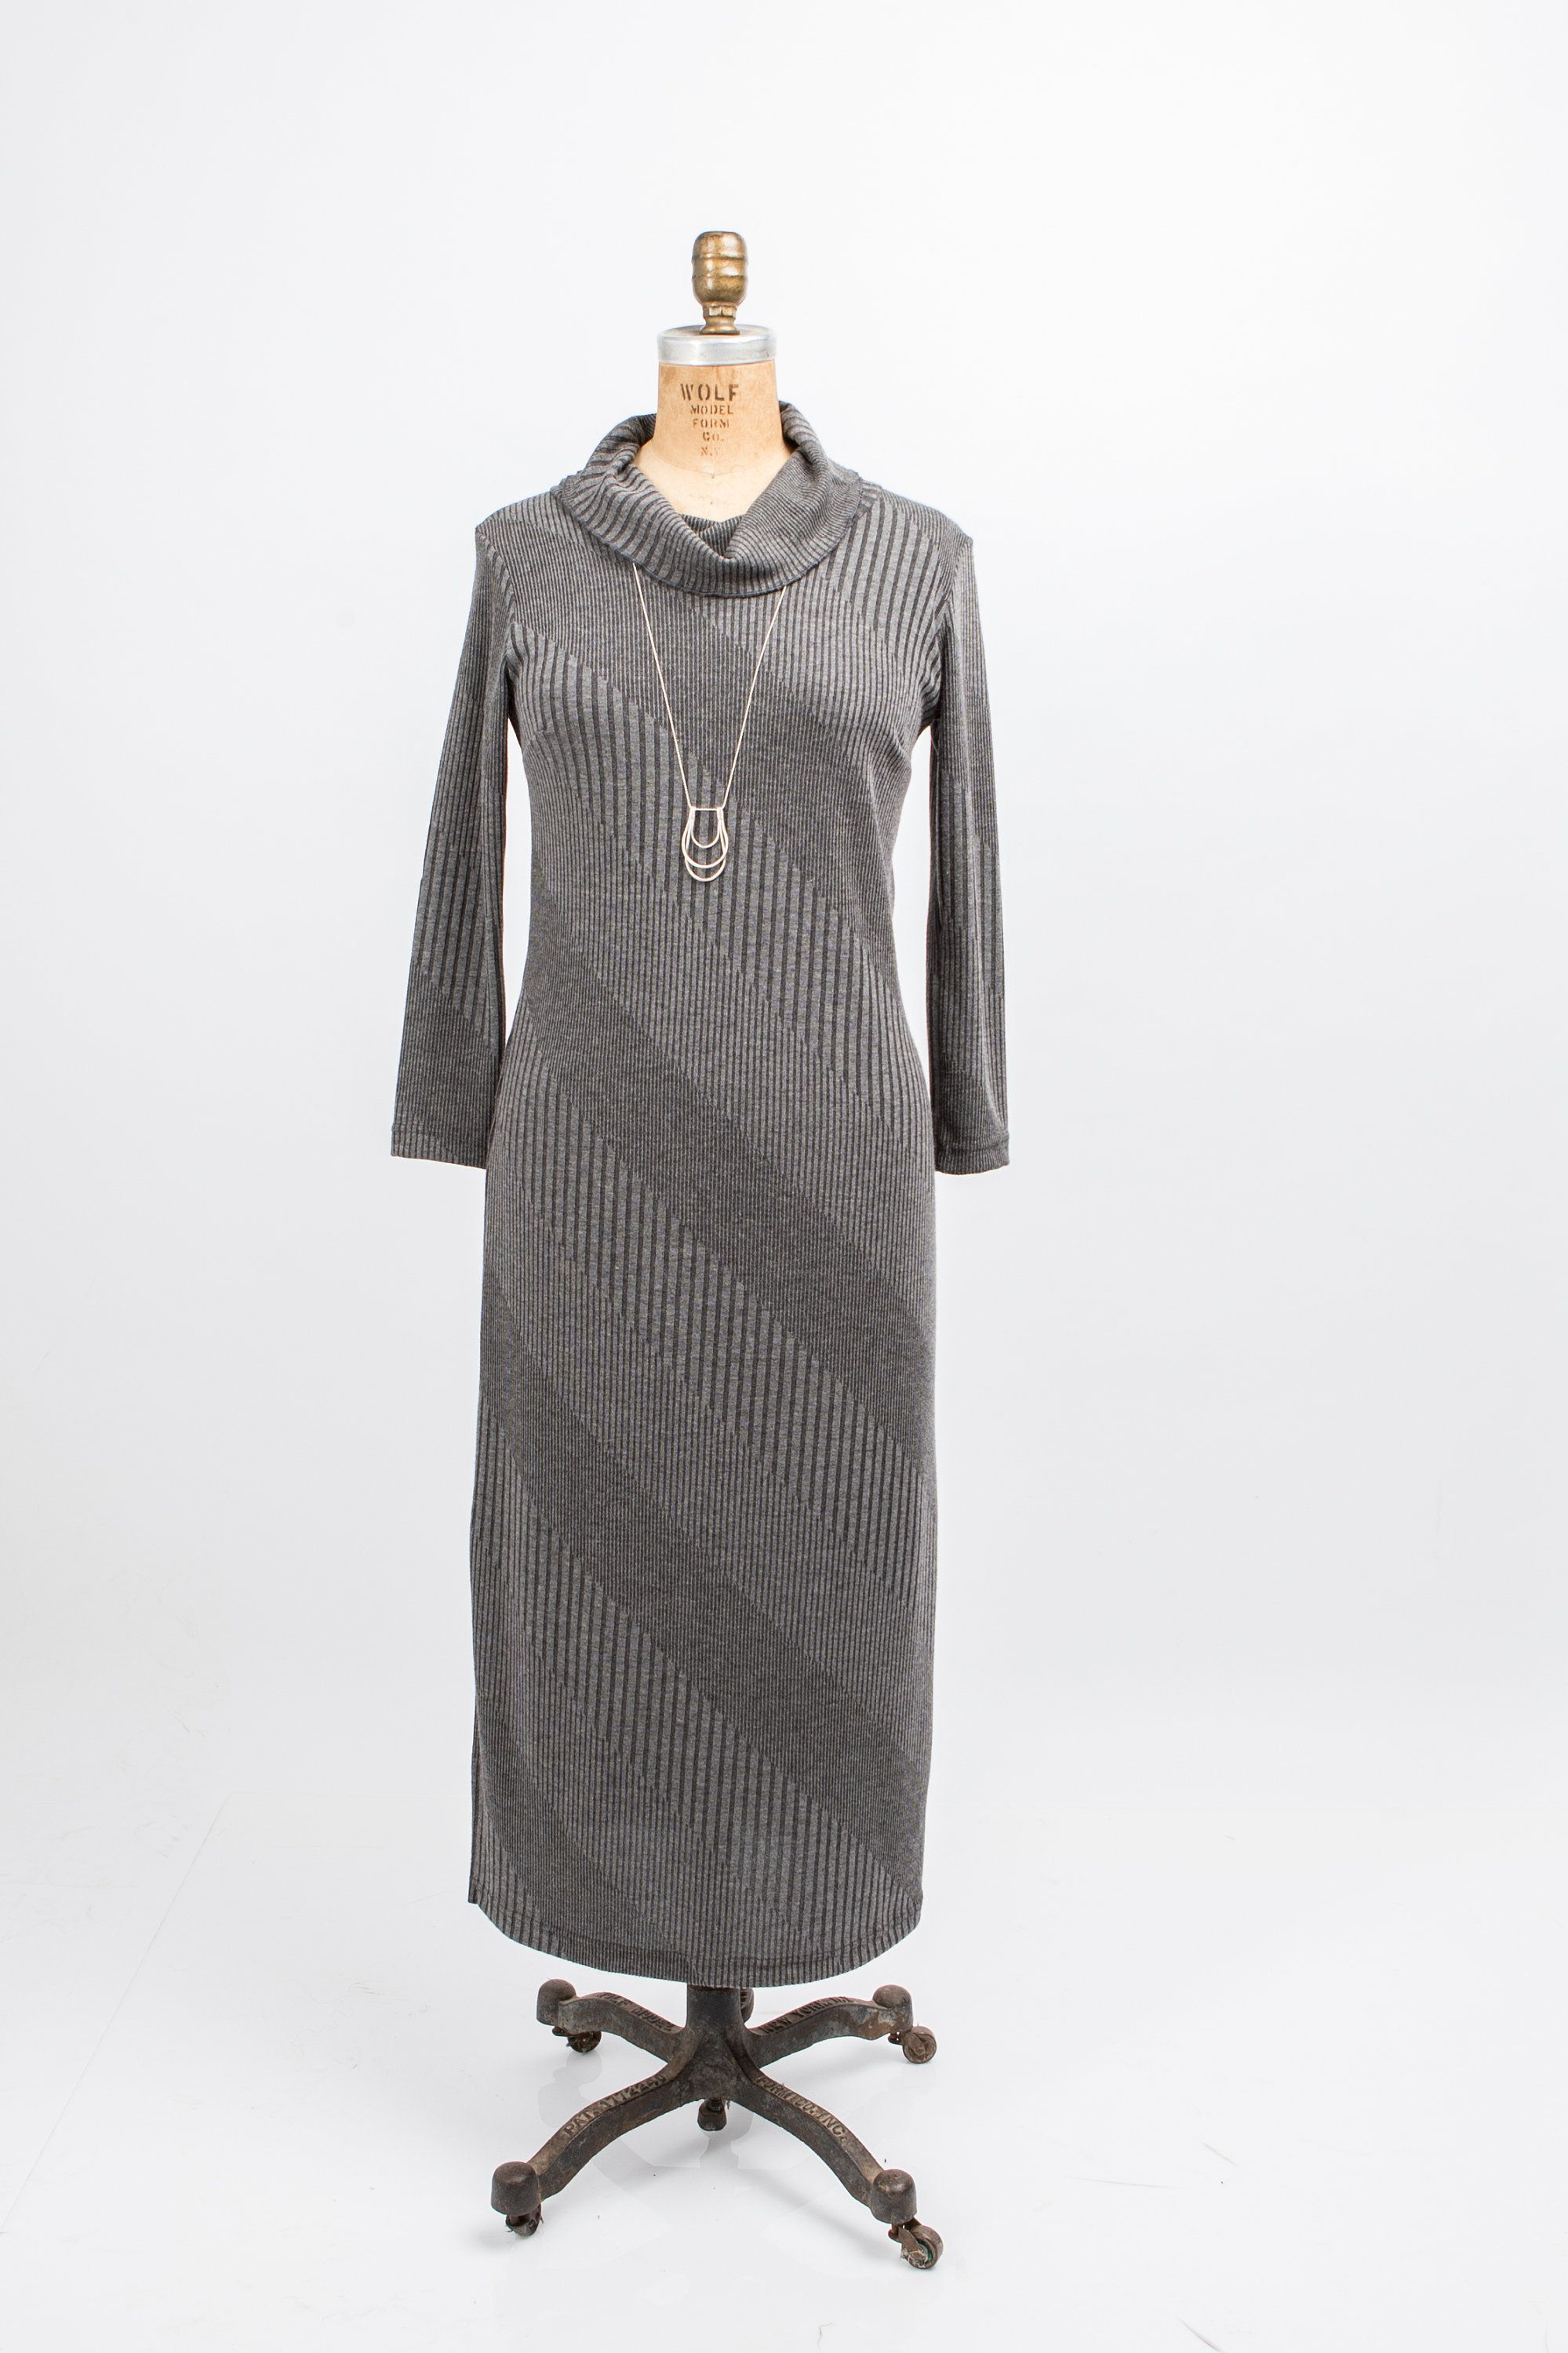 51b0458ff8 Modest Maternity Dresses For Sale - Gomes Weine AG